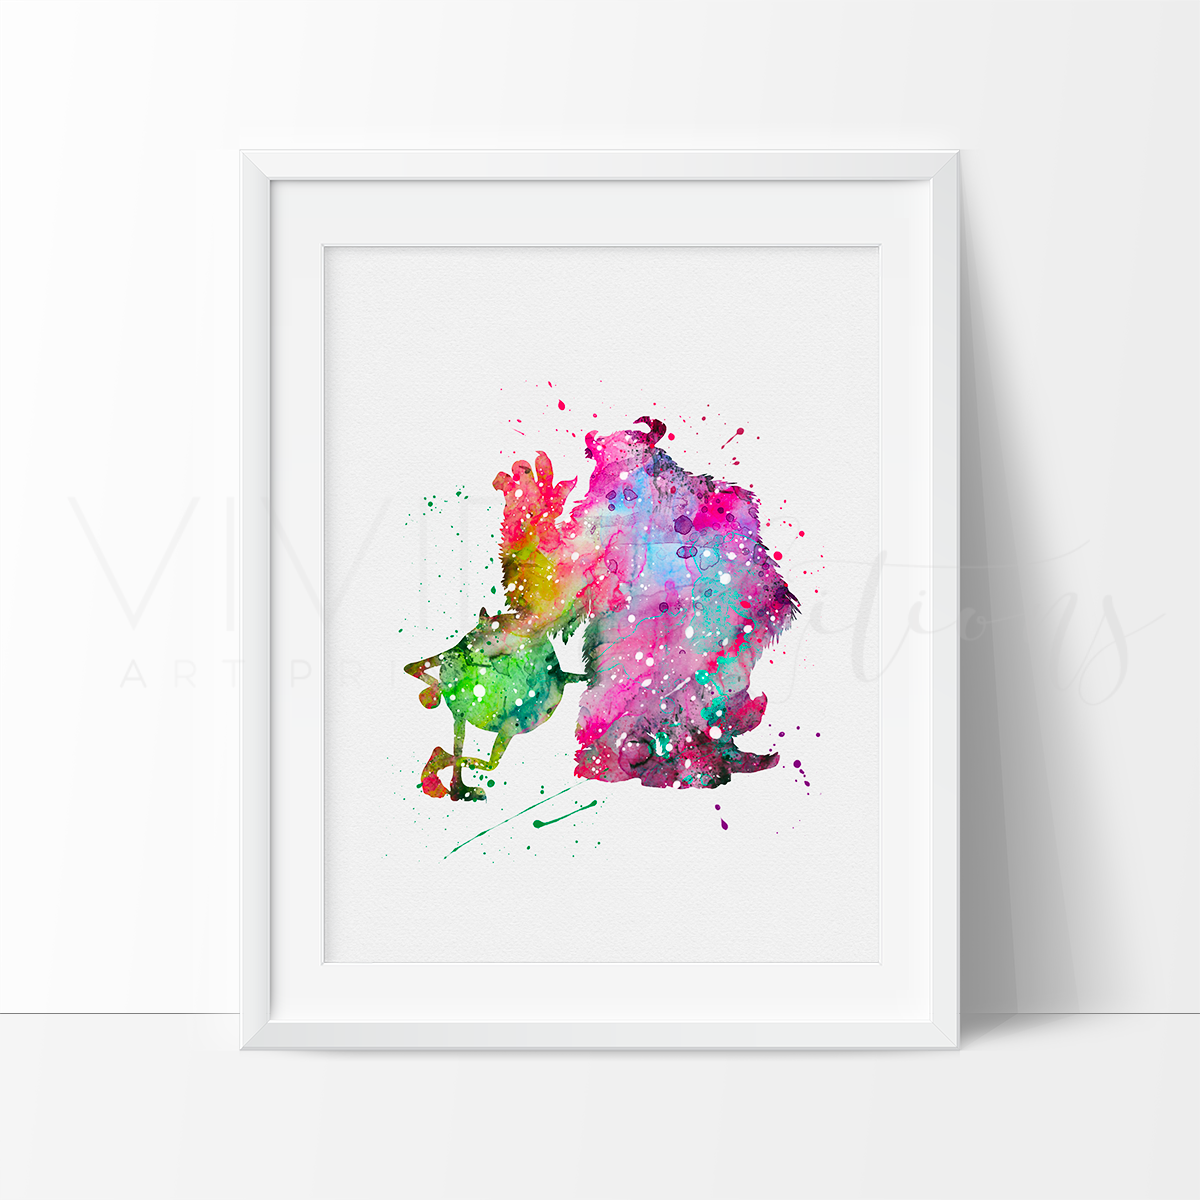 Mike & Sulley Watercolor Art Print Art Print - VIVIDEDITIONS